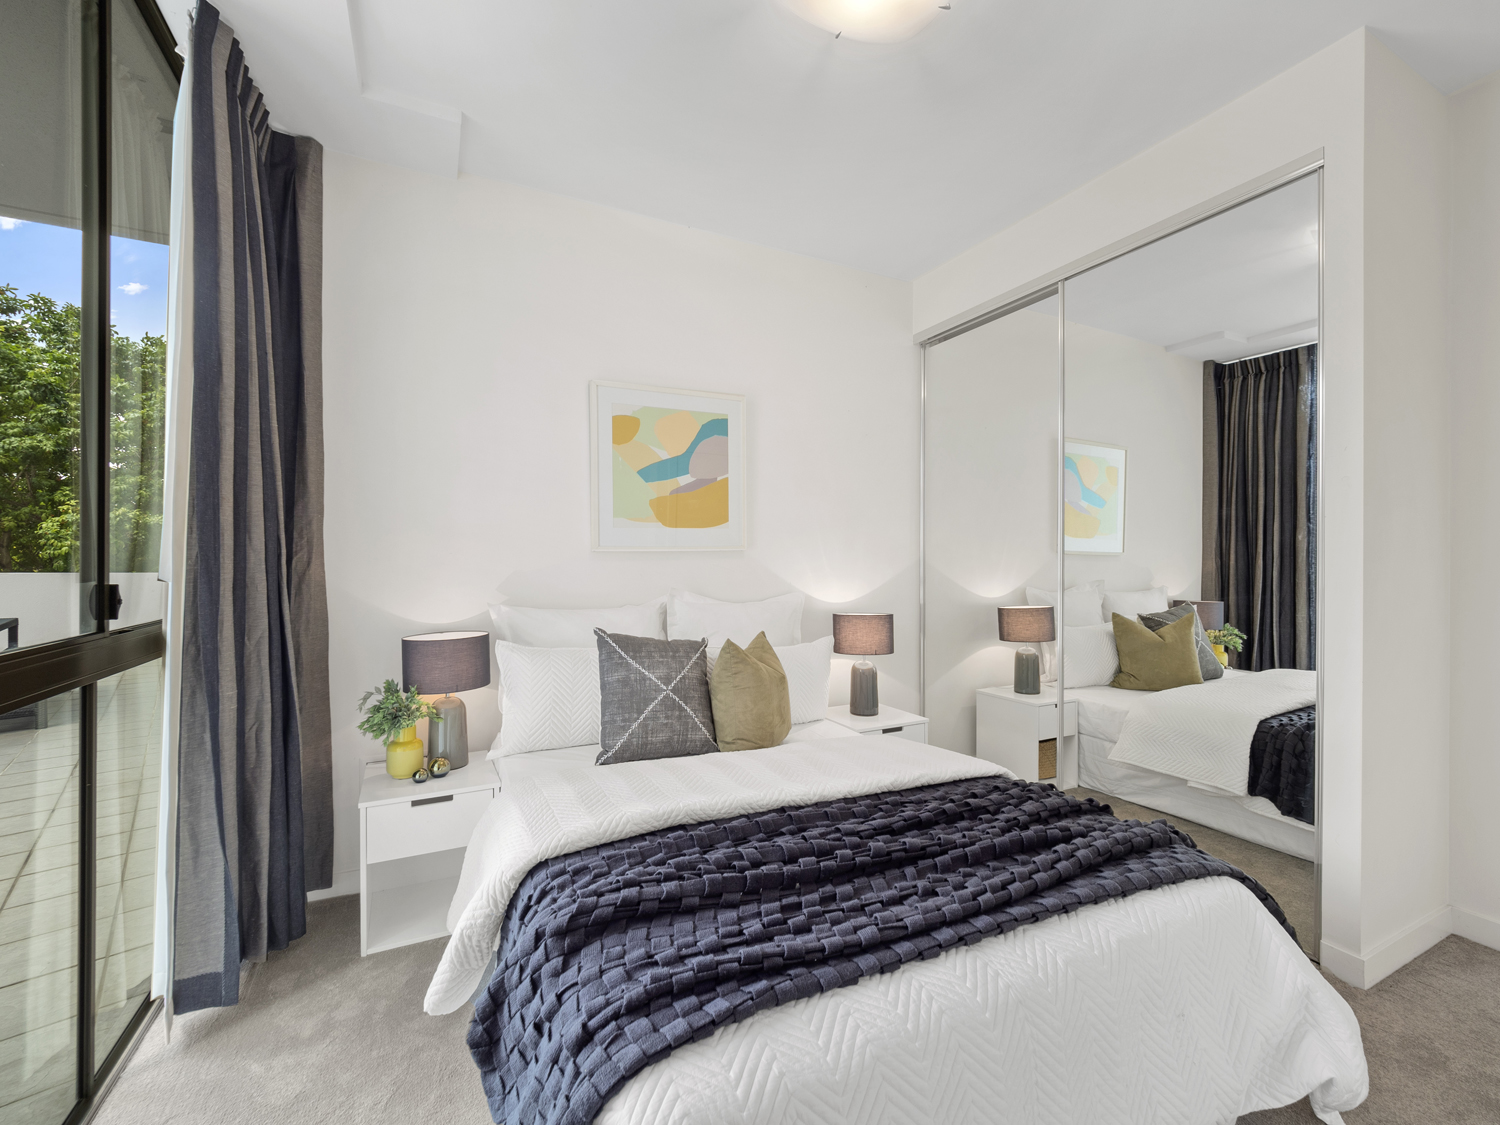 One of the bedrooms - Photographing an apartment for sale at 92 Quay St South Brisbane